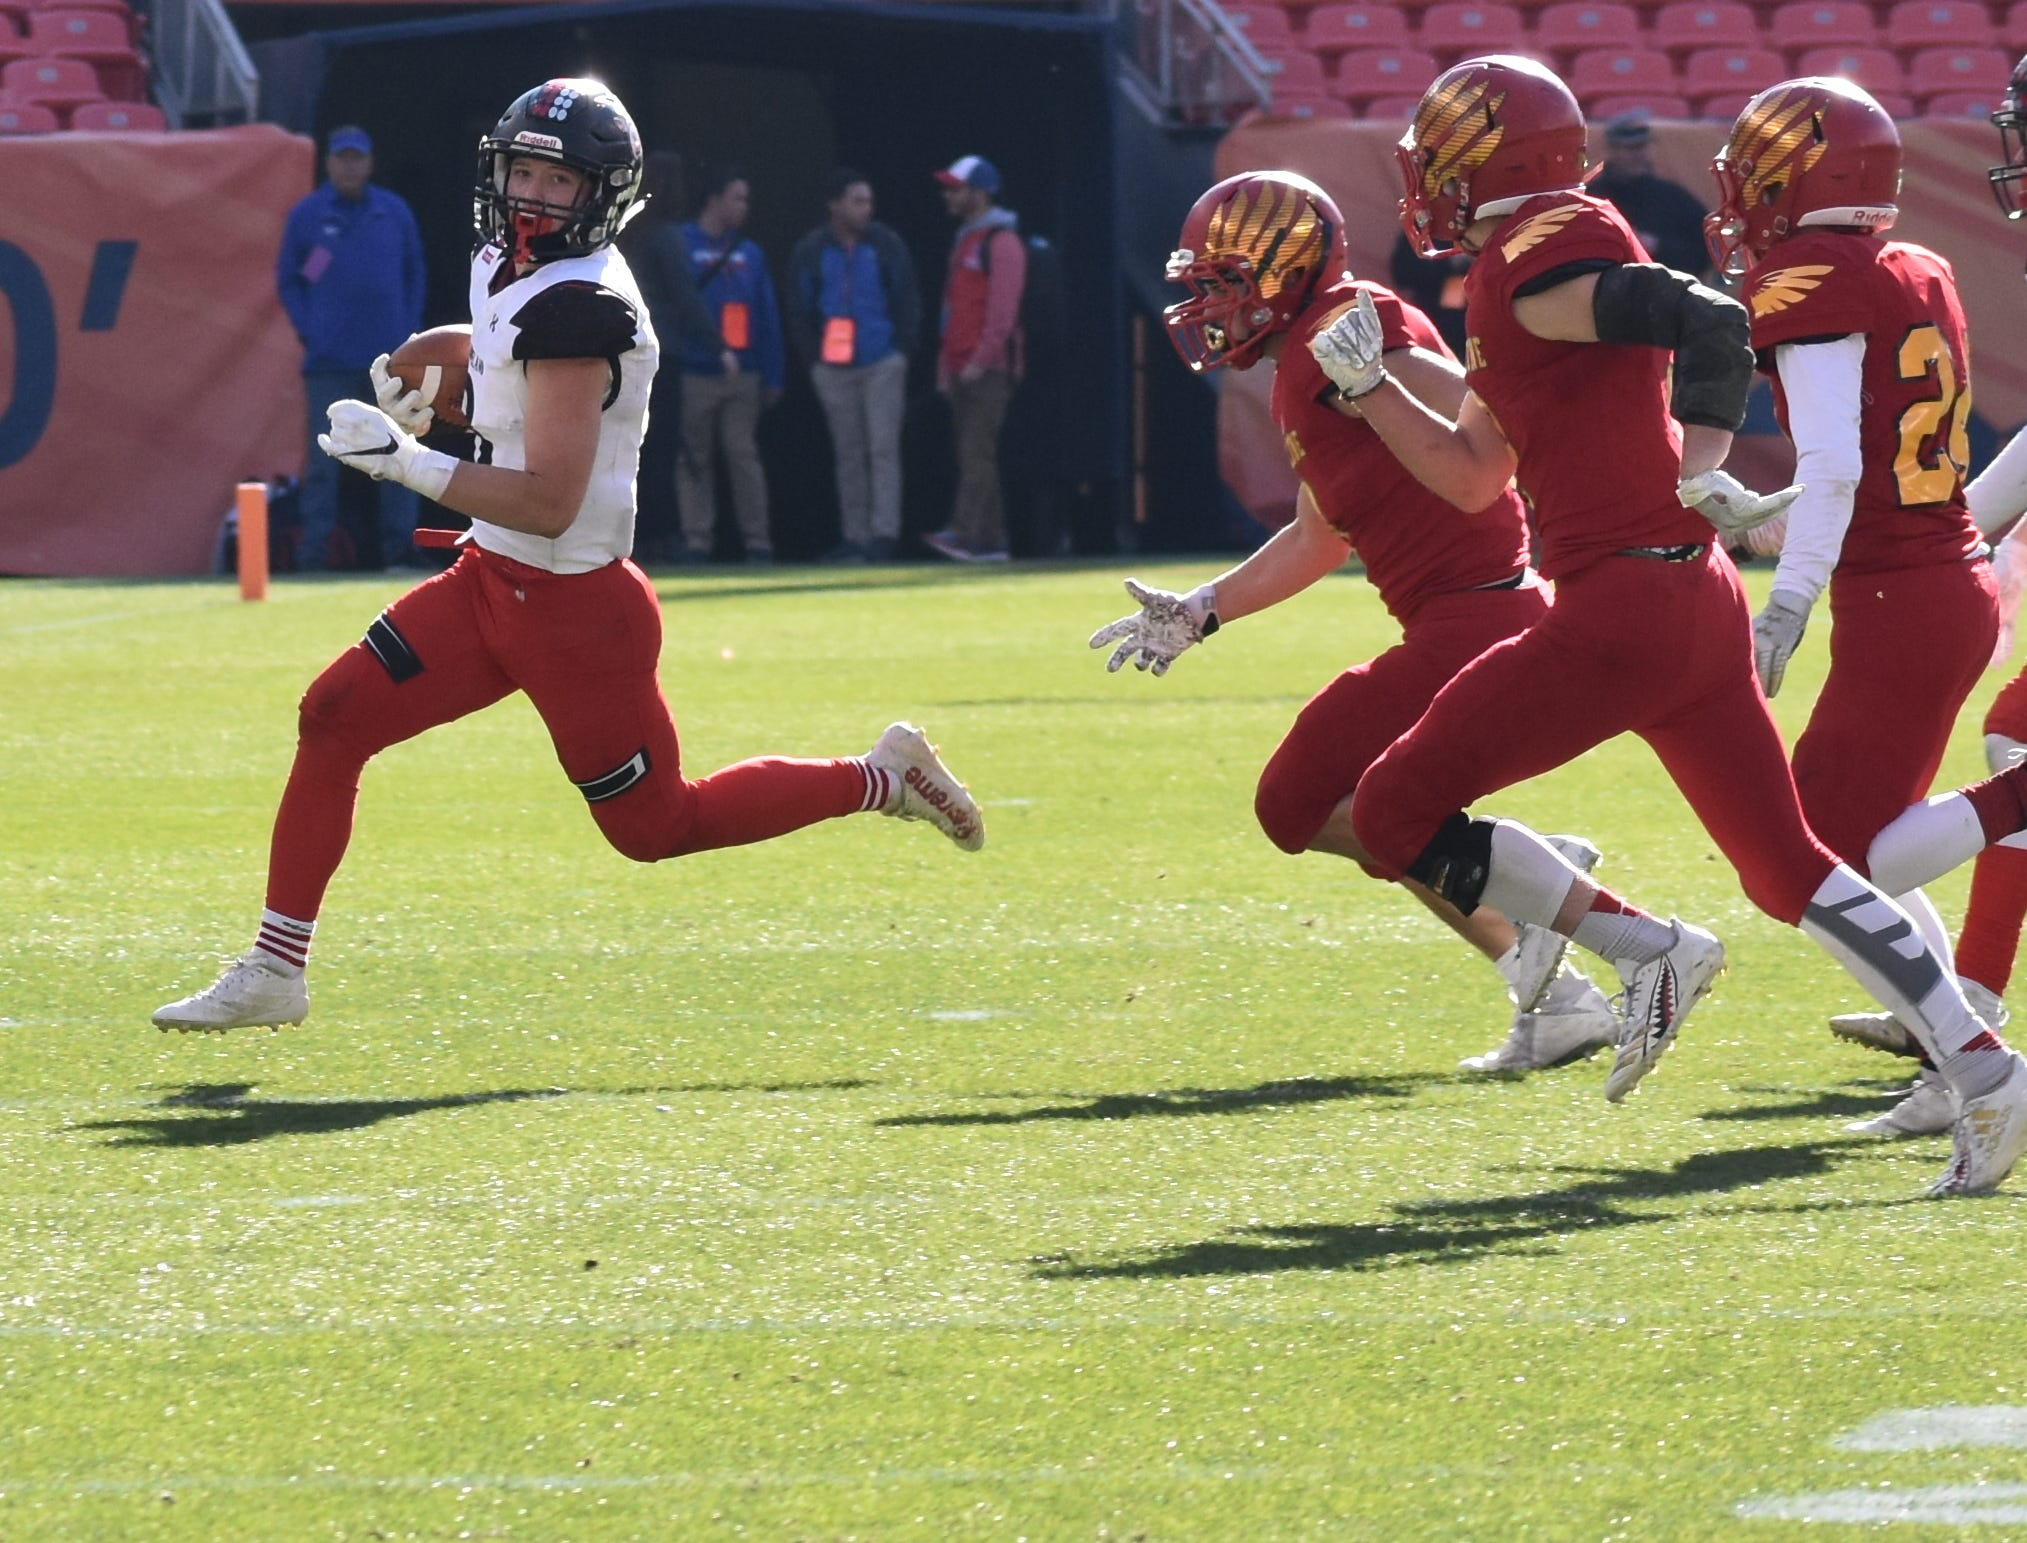 Loveland High School's Zach Weinmaster turns the corner while outrunning Skyline defenders during Saturday's Class 4A state championship game in Denver.